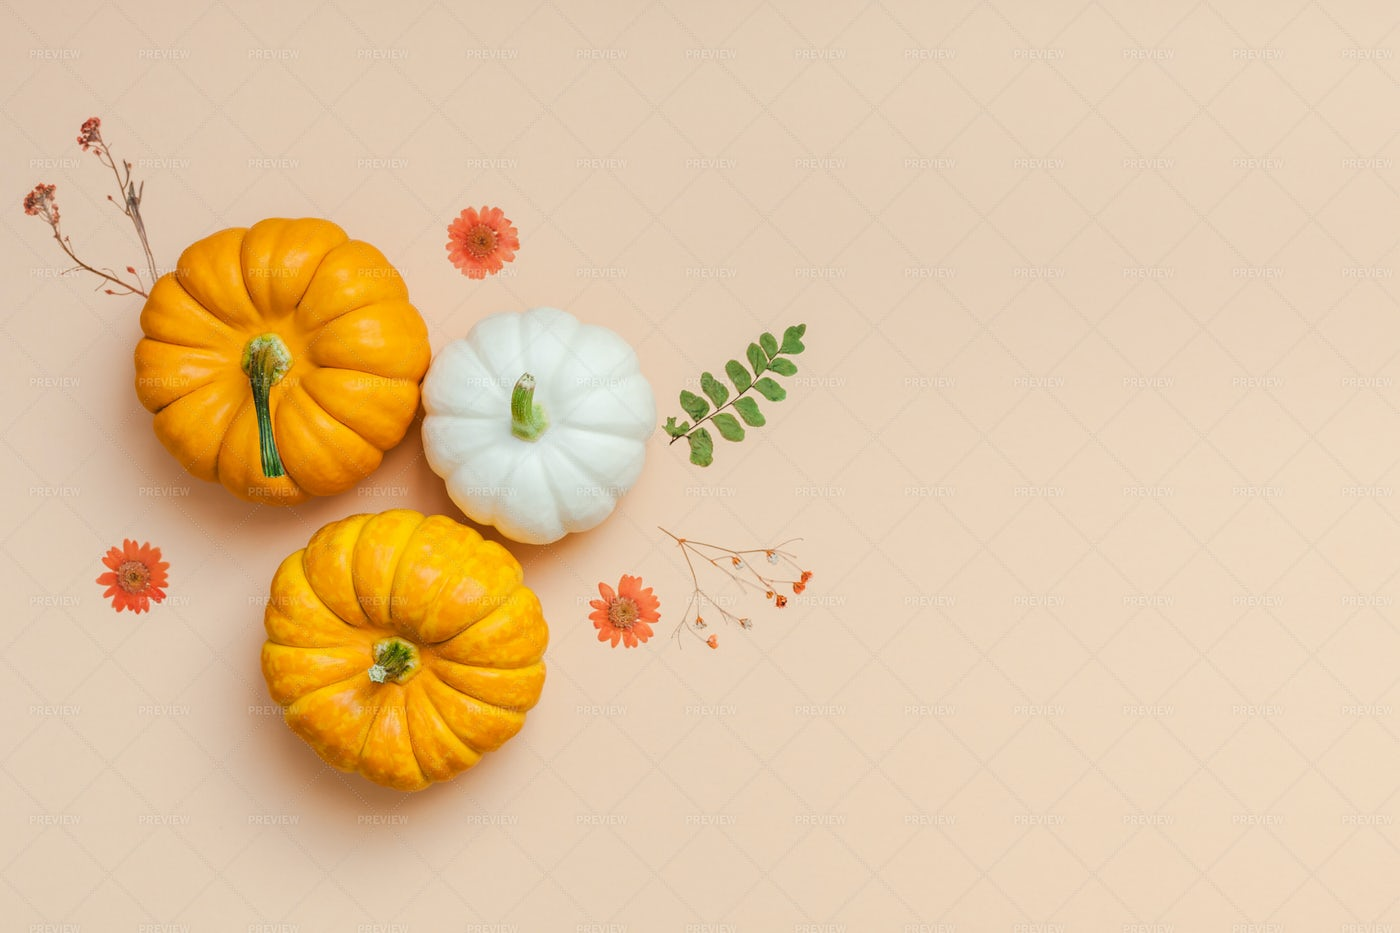 Pumpkins And Dried Flowers: Stock Photos